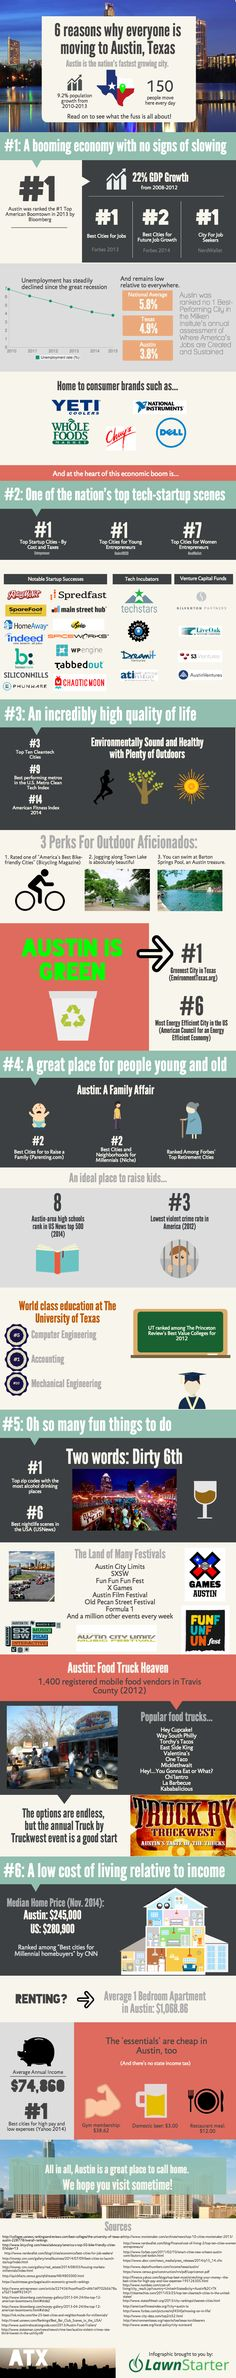 6 Reasons Why Everyone Is Moving To #Austin - Do you fancy an infographic? There are a lot of them online, but if you want your own please visit http://www.linfografico.com/prezzi/ Online girano molte infografiche, se ne vuoi realizzare una tutta tua visita http://www.linfografico.com/prezzi/